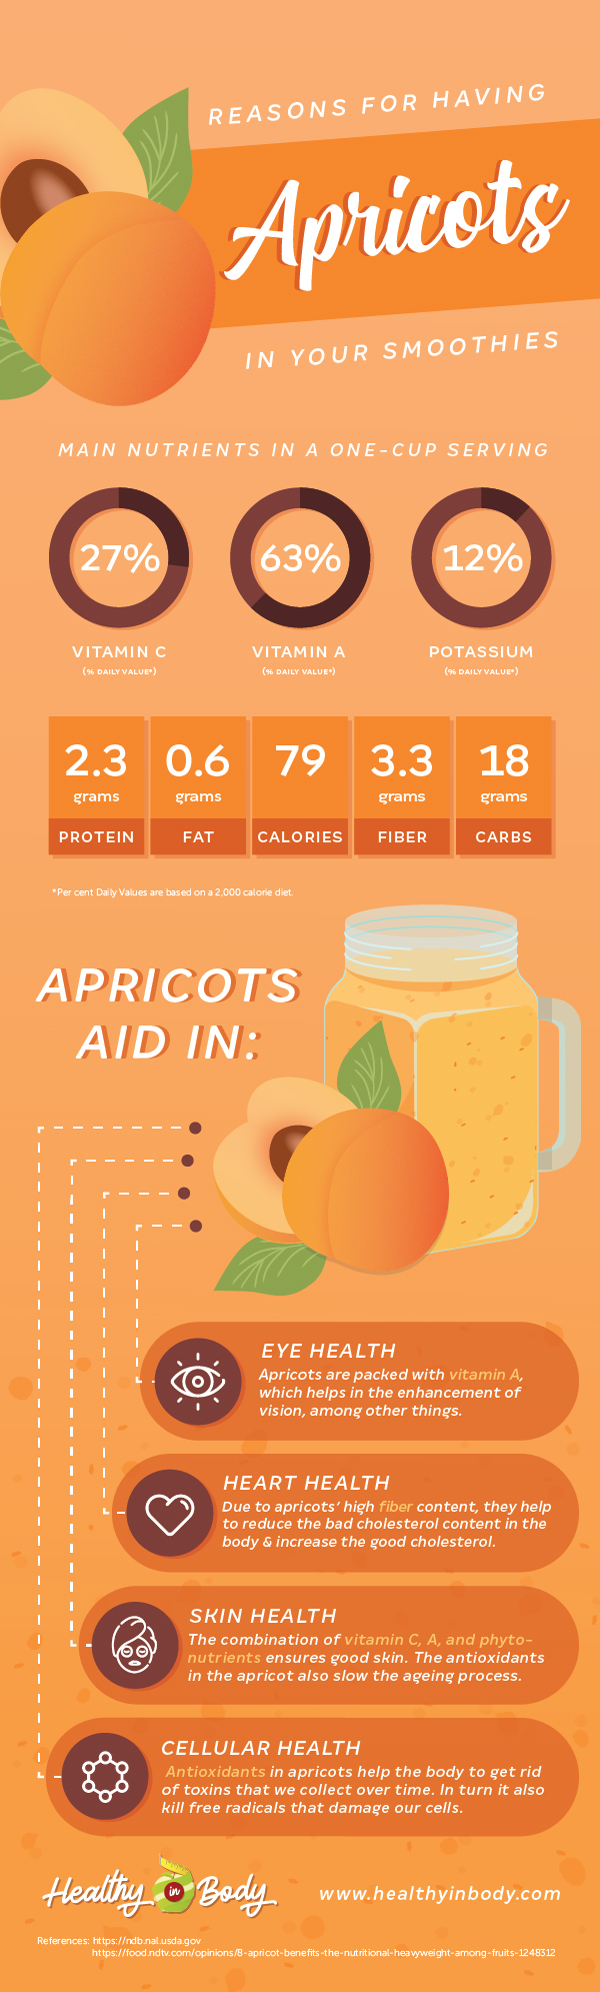 An info-graphic presenting the nutrient content and health benefits of apricots and an illustration of a couple of apricots next to a glass of apricot smoothie